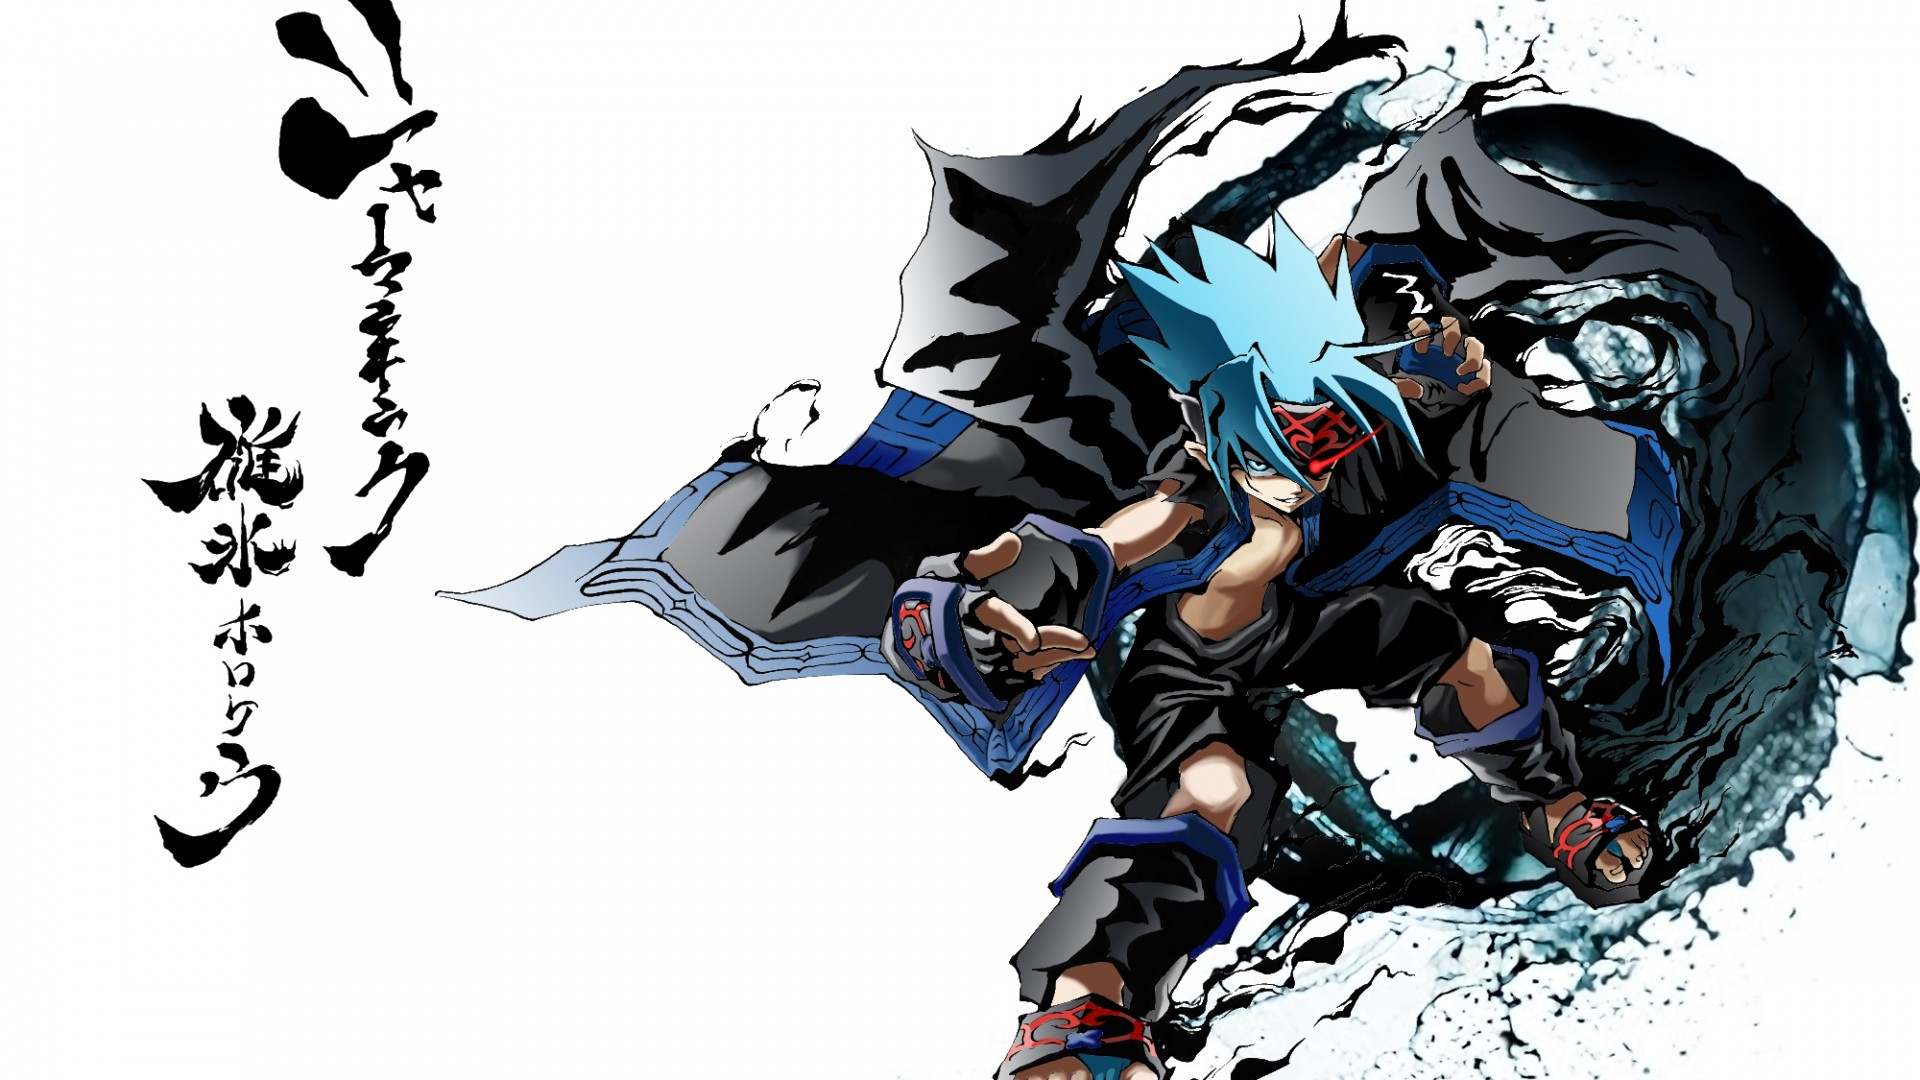 1920x1080 Anime Wallpaper ·① Download Free Awesome Full HD